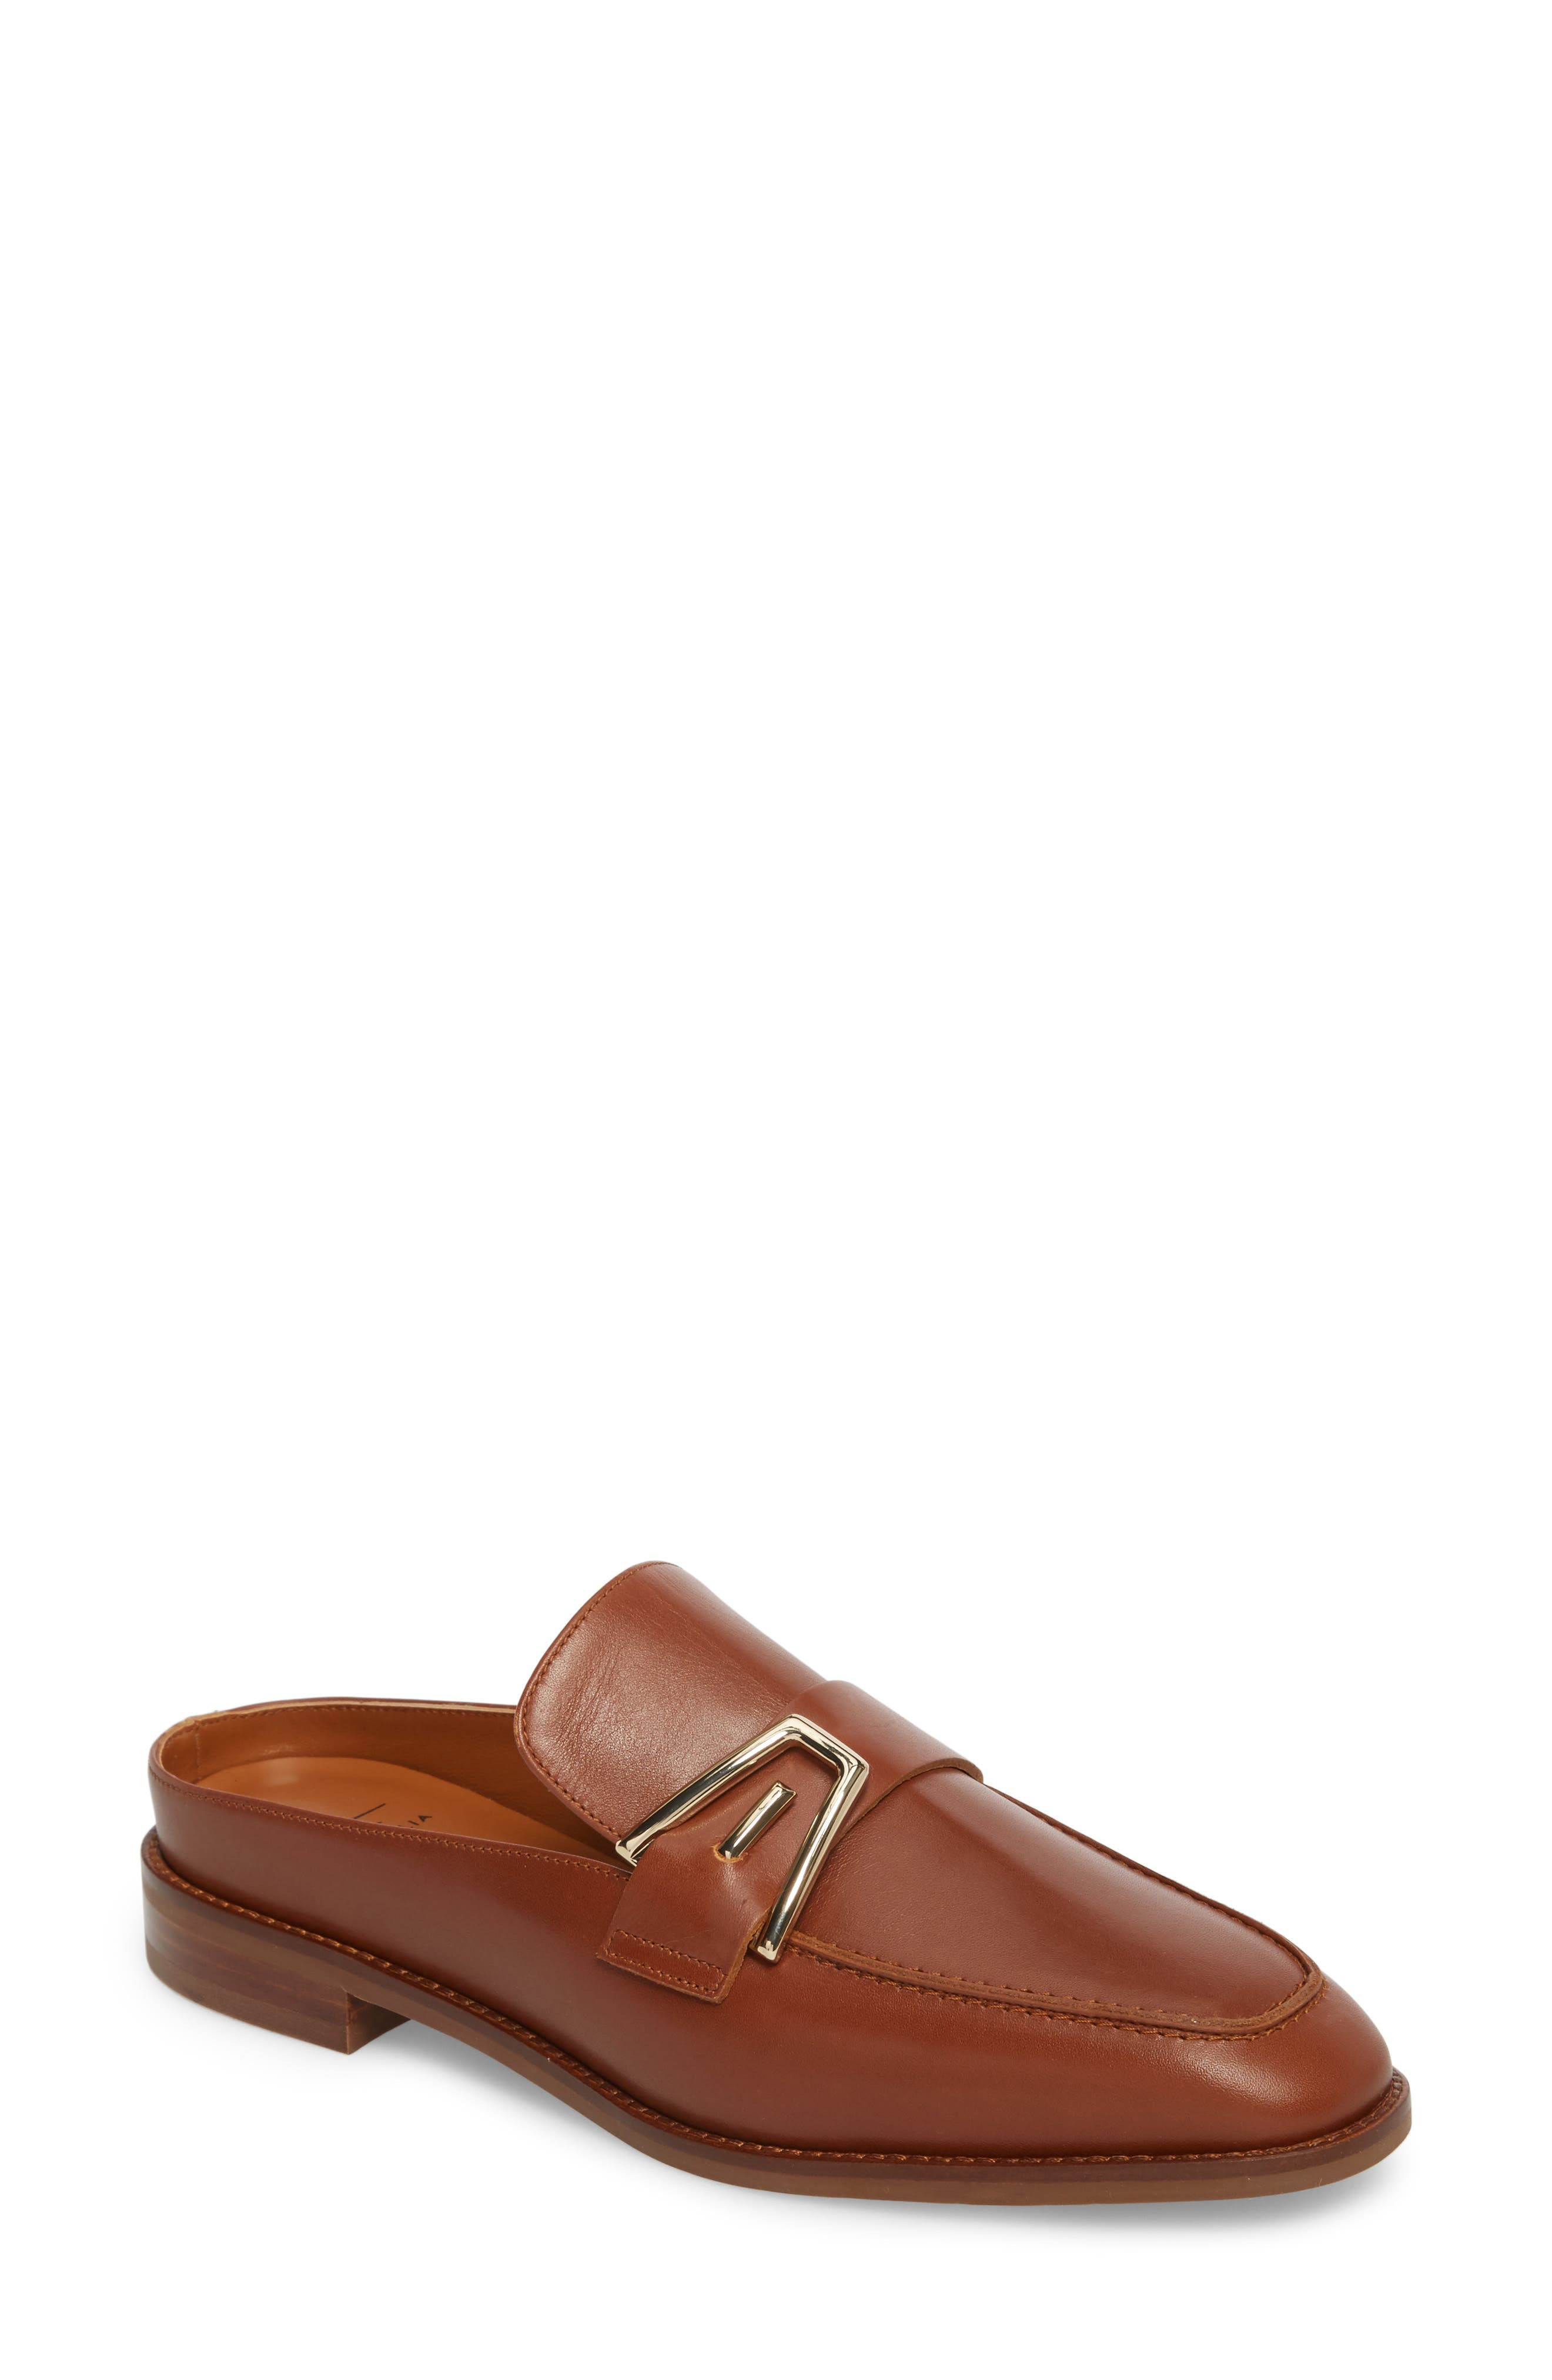 Tosca Loafer Mule,                             Main thumbnail 1, color,